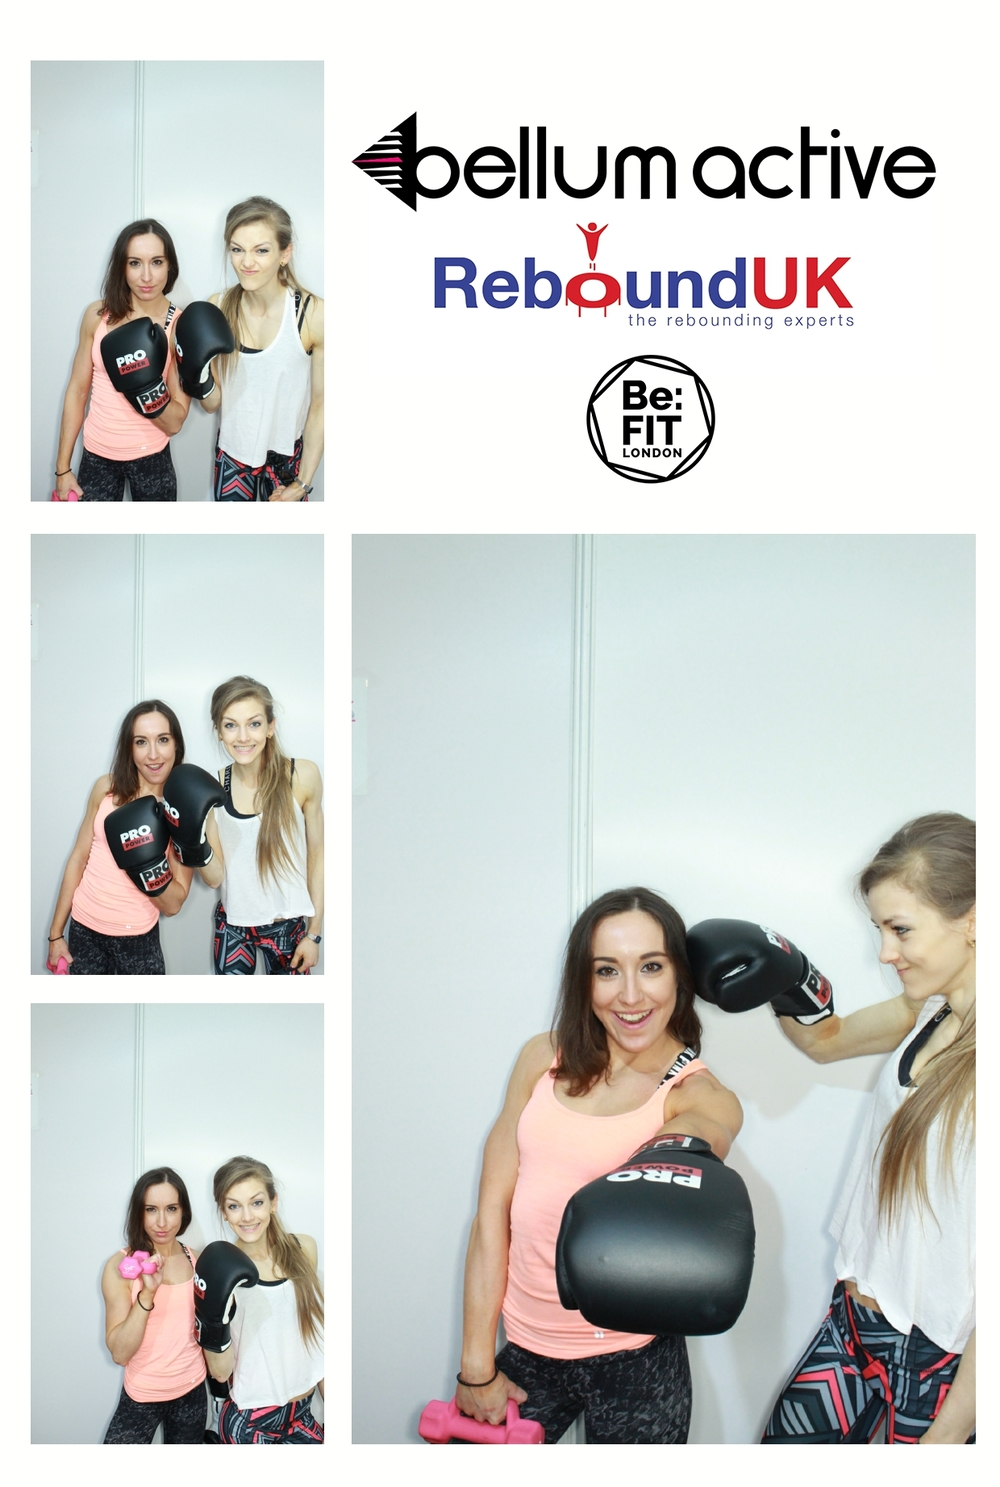 The London Lightbox Bellum Active Rebound Be:FIT Photo booth